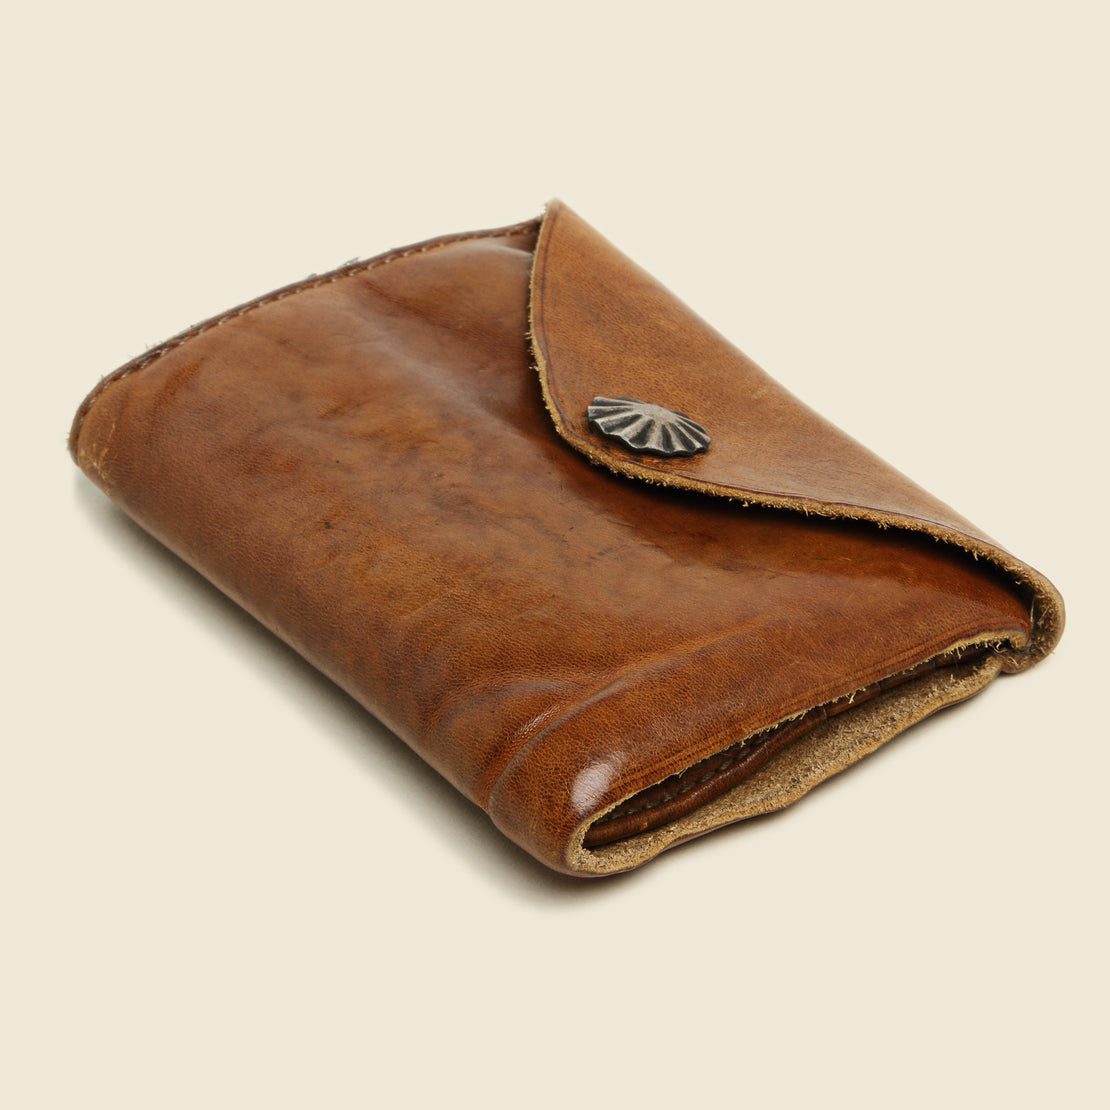 Concho Coin Wallet - Brown - RRL - STAG Provisions - Accessories - Wallets